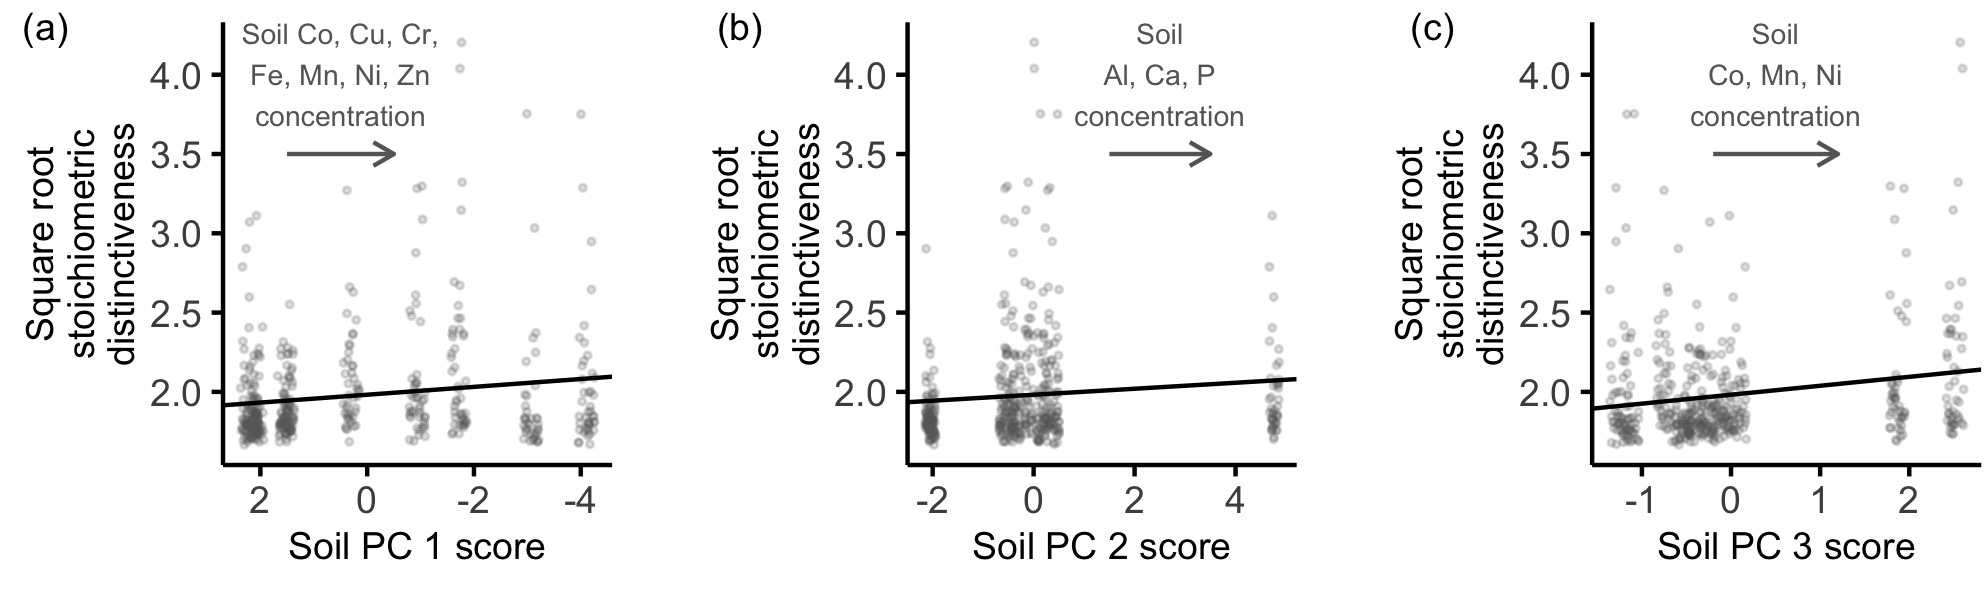 Increasing stoichiometric distinctiveness of tropical tree leaves with increasing soil metal concentrations.